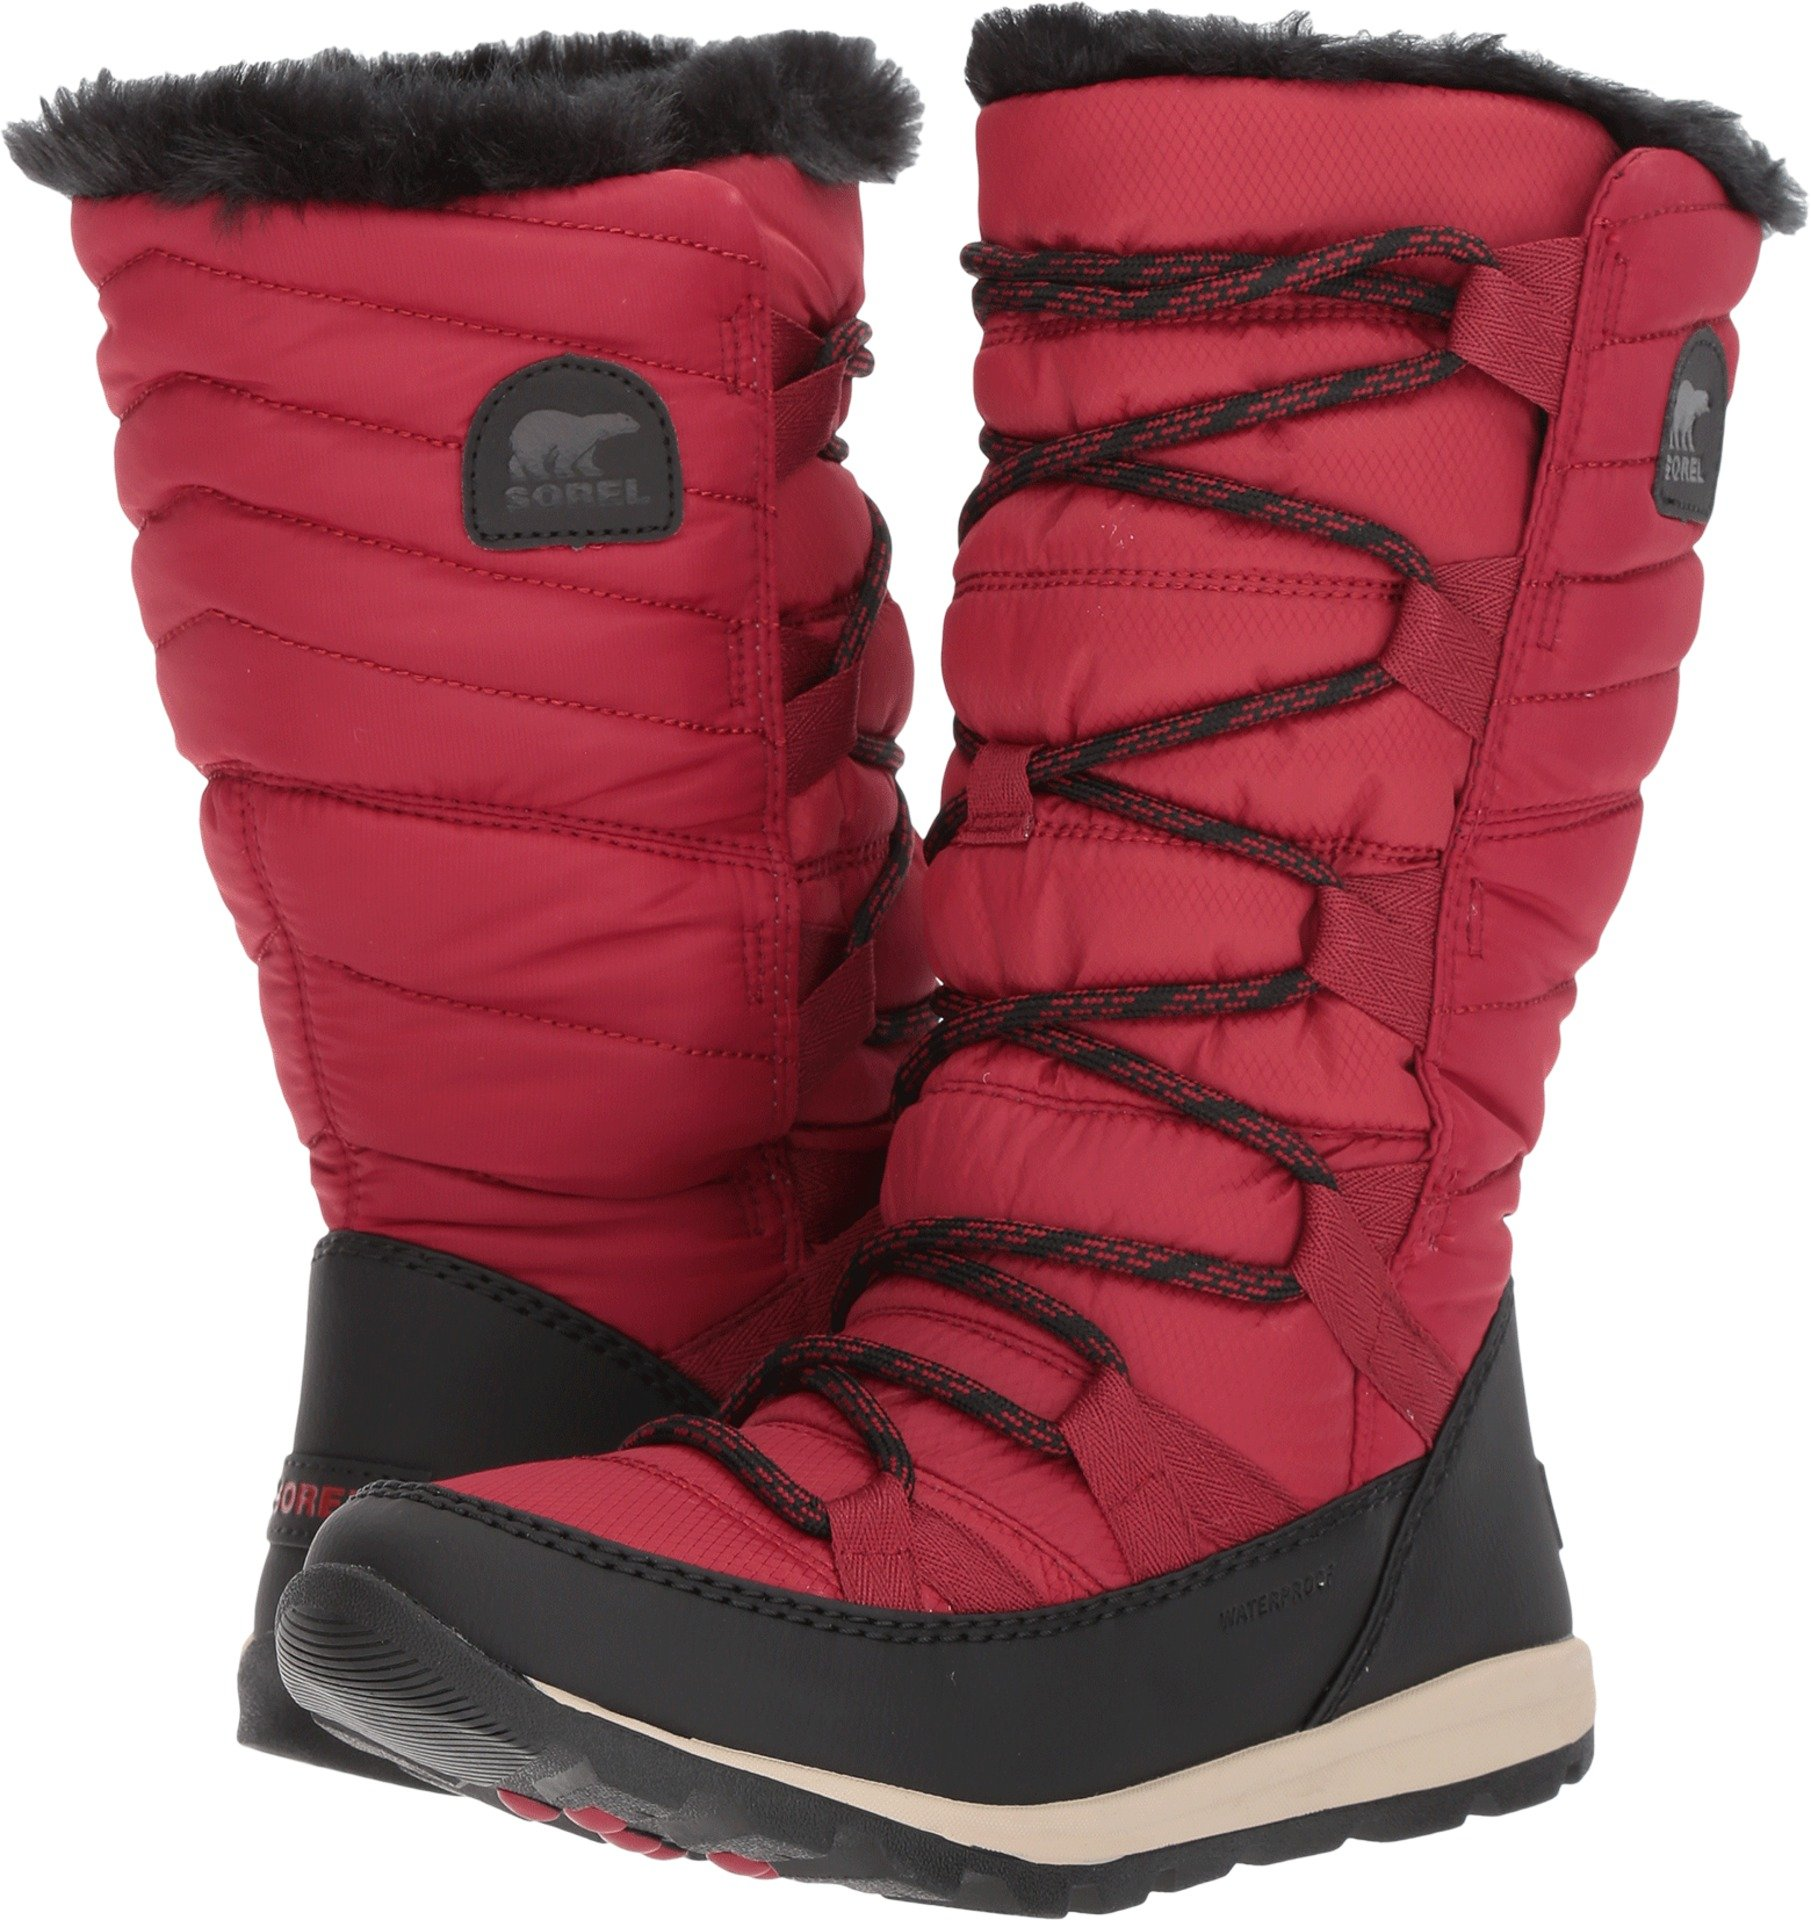 Sorel Women's Whitney Lace Waterproof Winter Boot Red 10 M US by SOREL